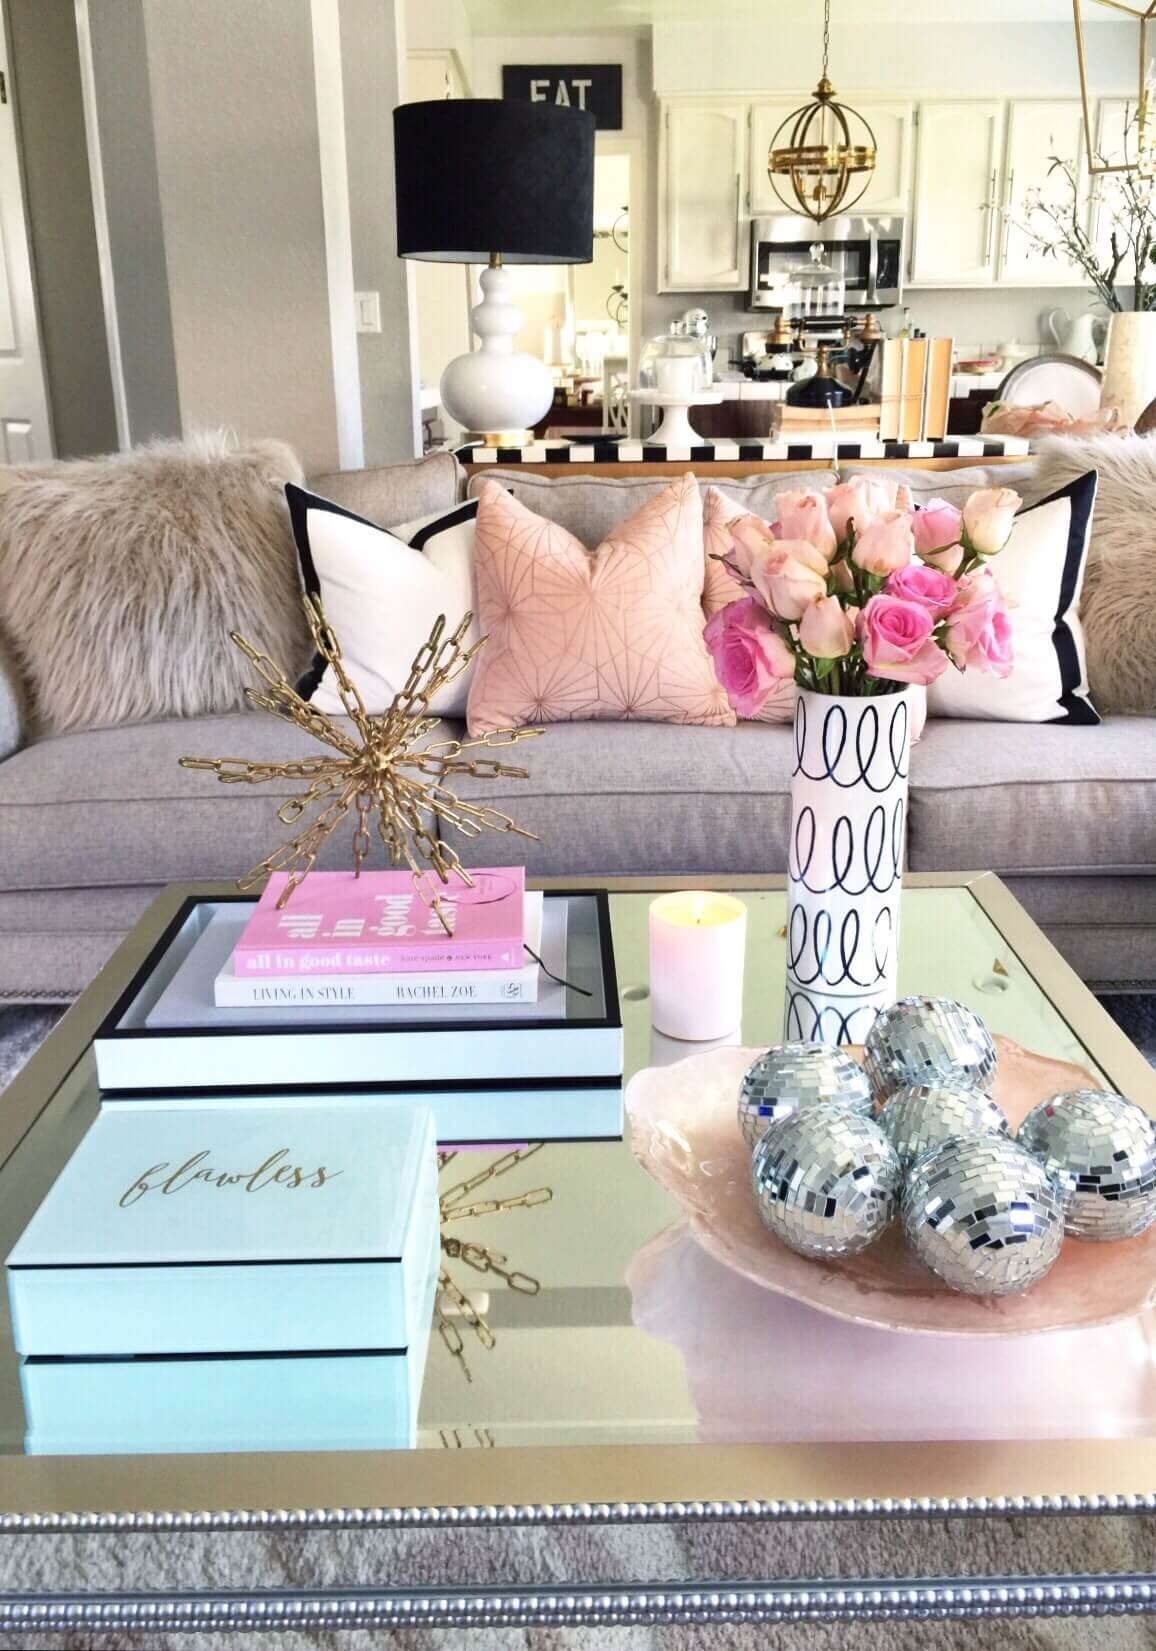 Glass Coffee Table Decor Ideas Luxury 37 Best Coffee Table Decorating Ideas and Designs for 2017